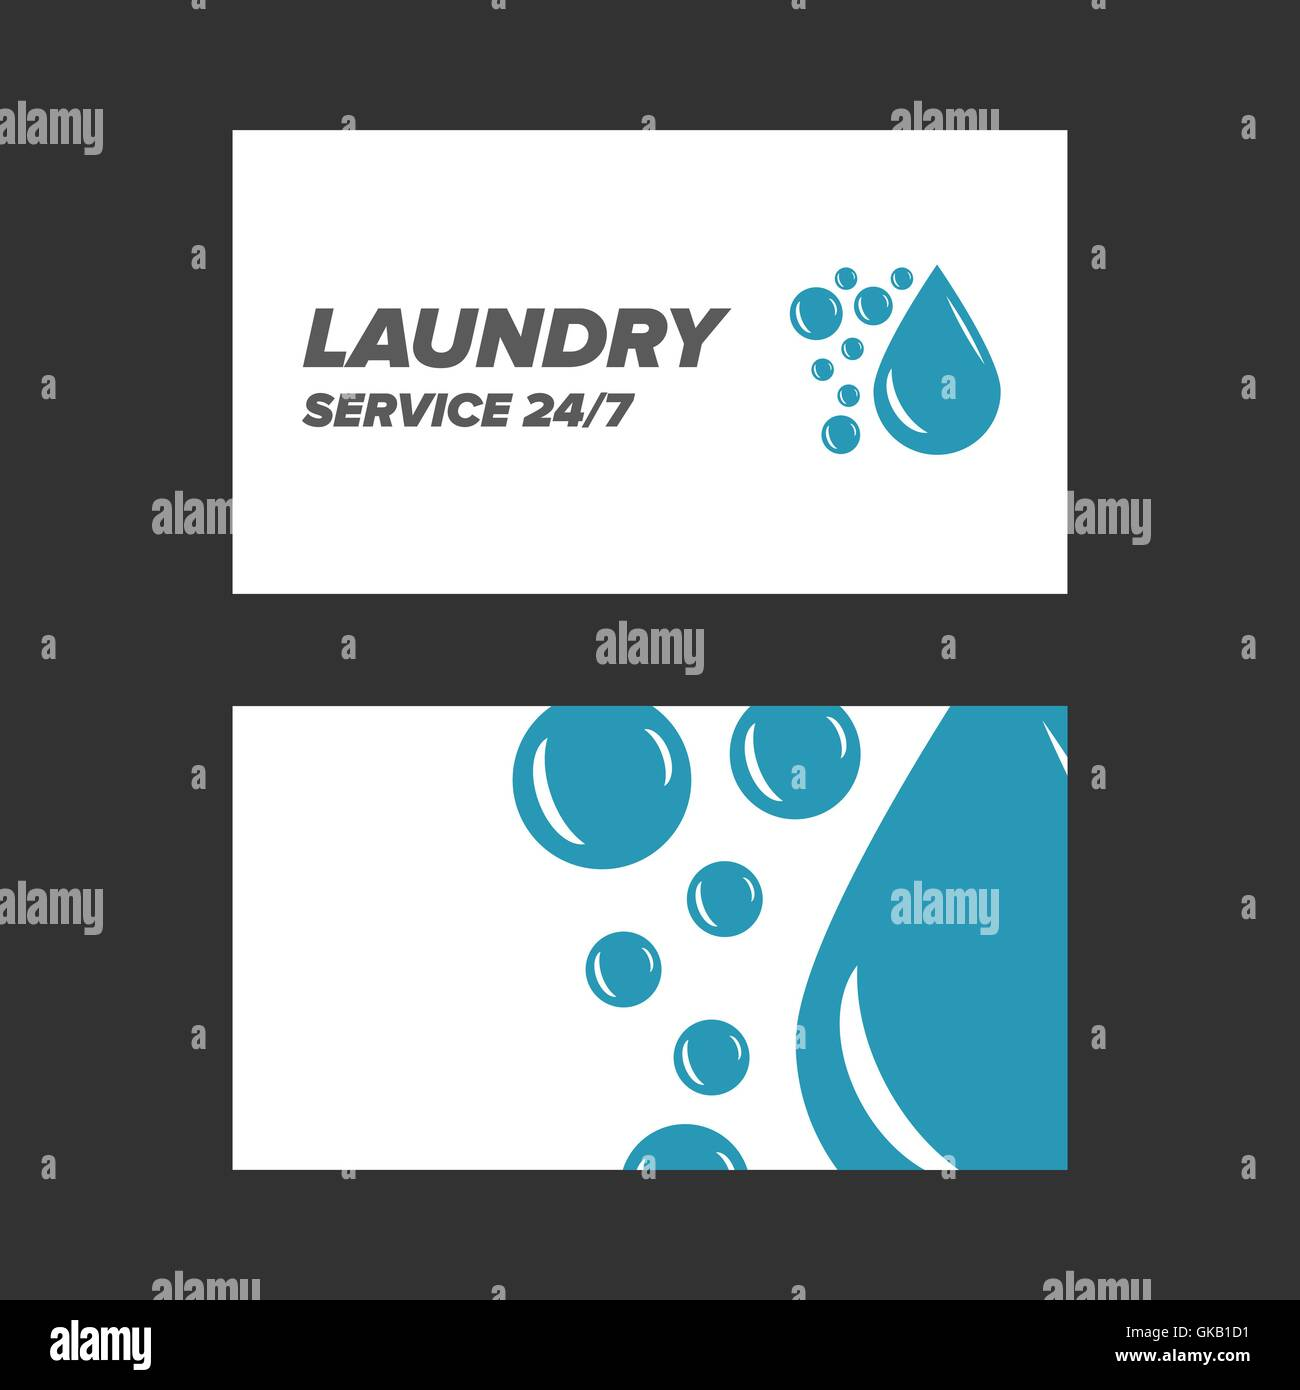 Blue Laundry Service Business Card Stock Photos & Blue Laundry ...